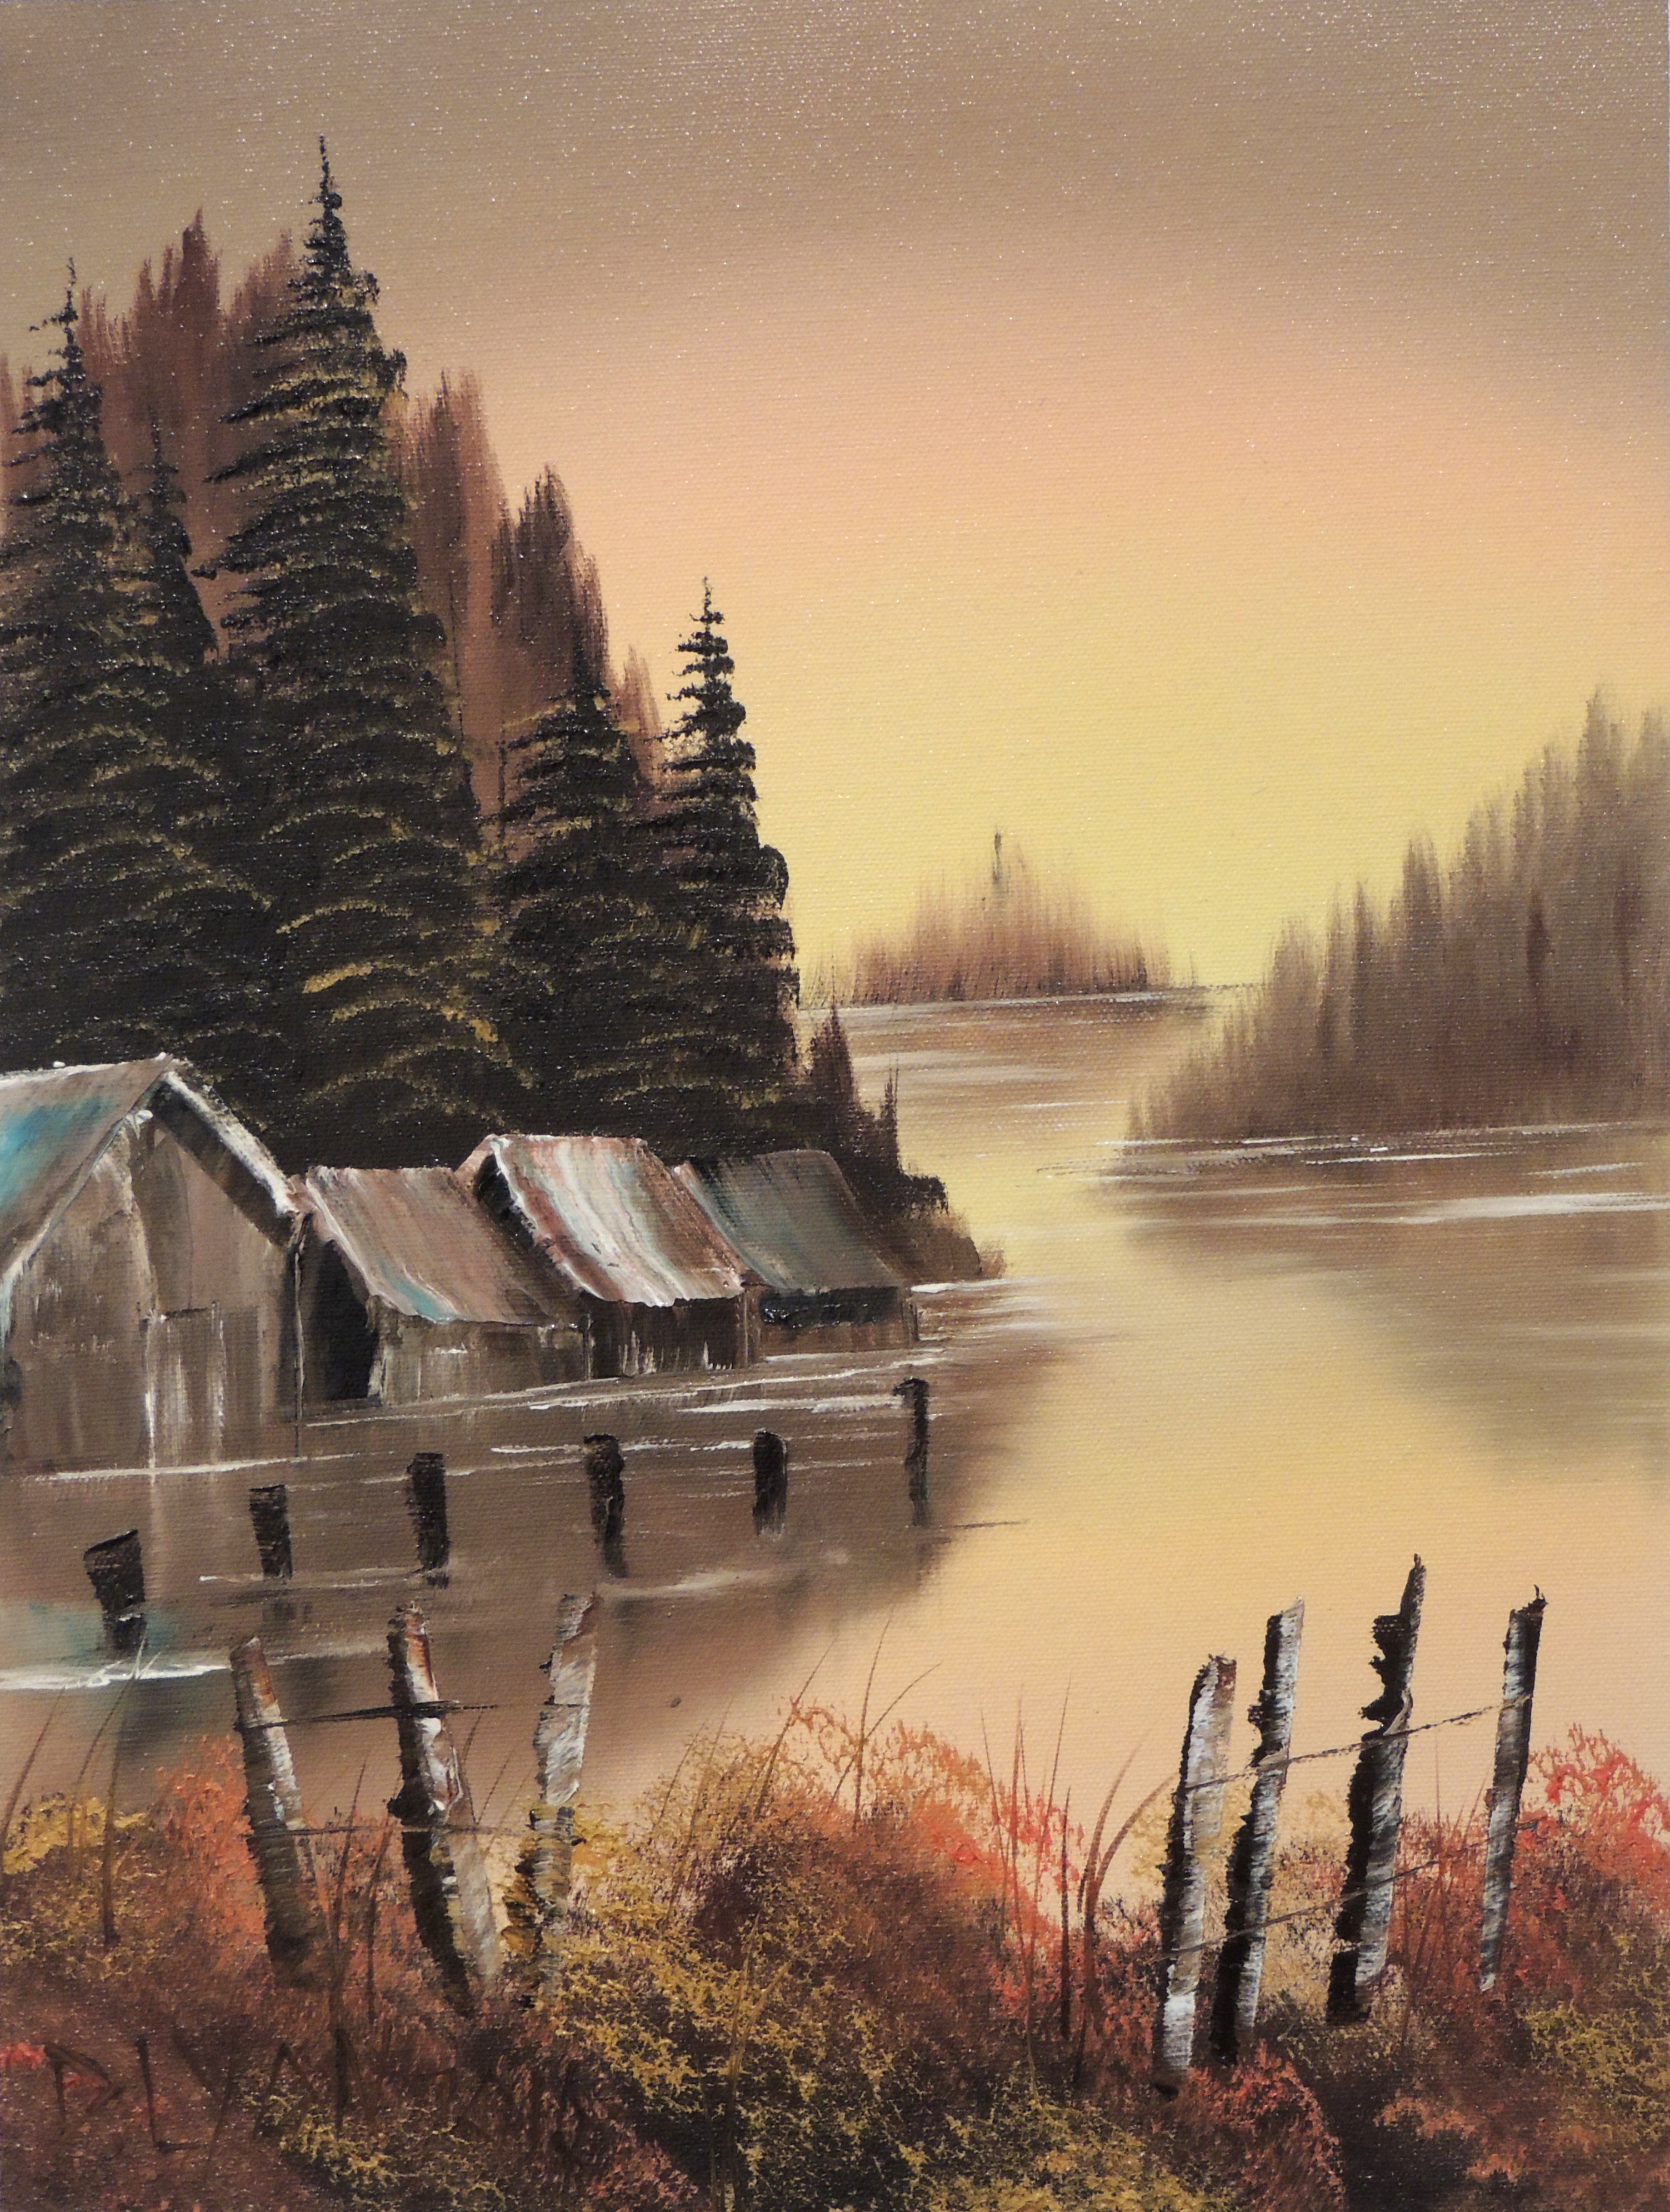 Diane F. Lyon | SUNSET LAKE | Oil on Canvas